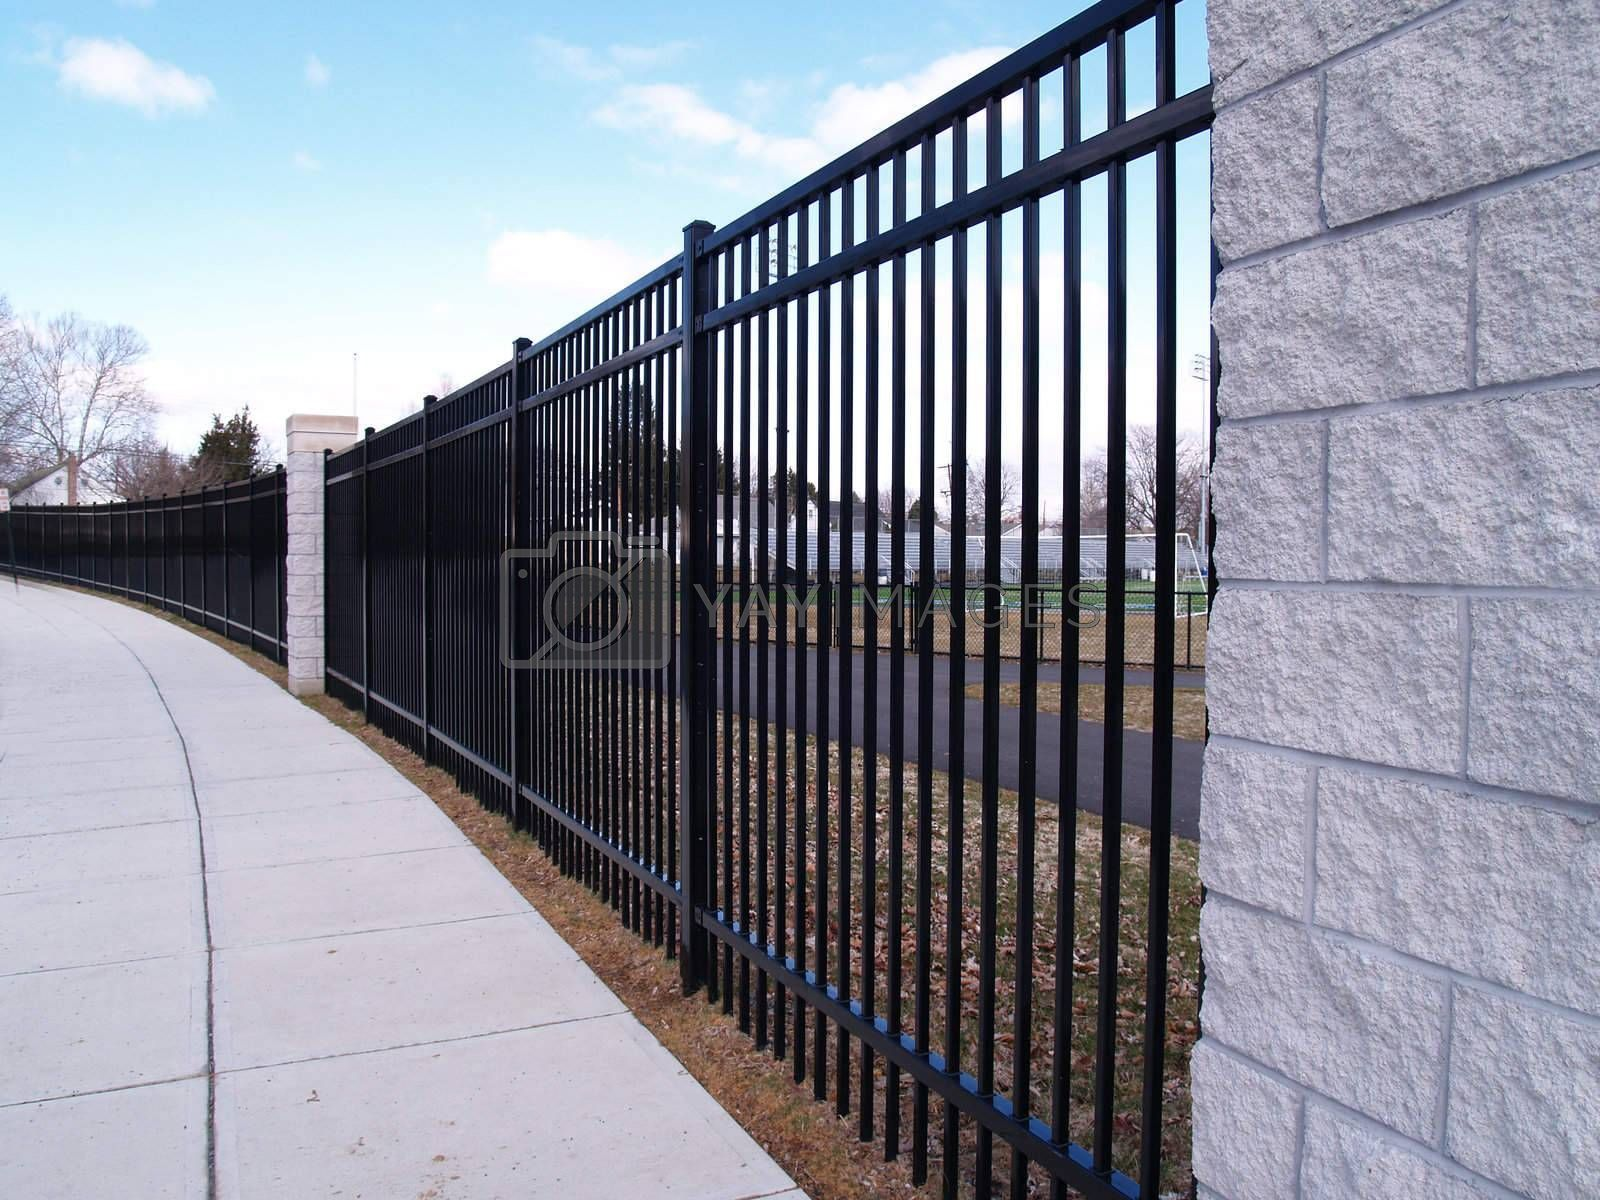 a view of a tall black fence